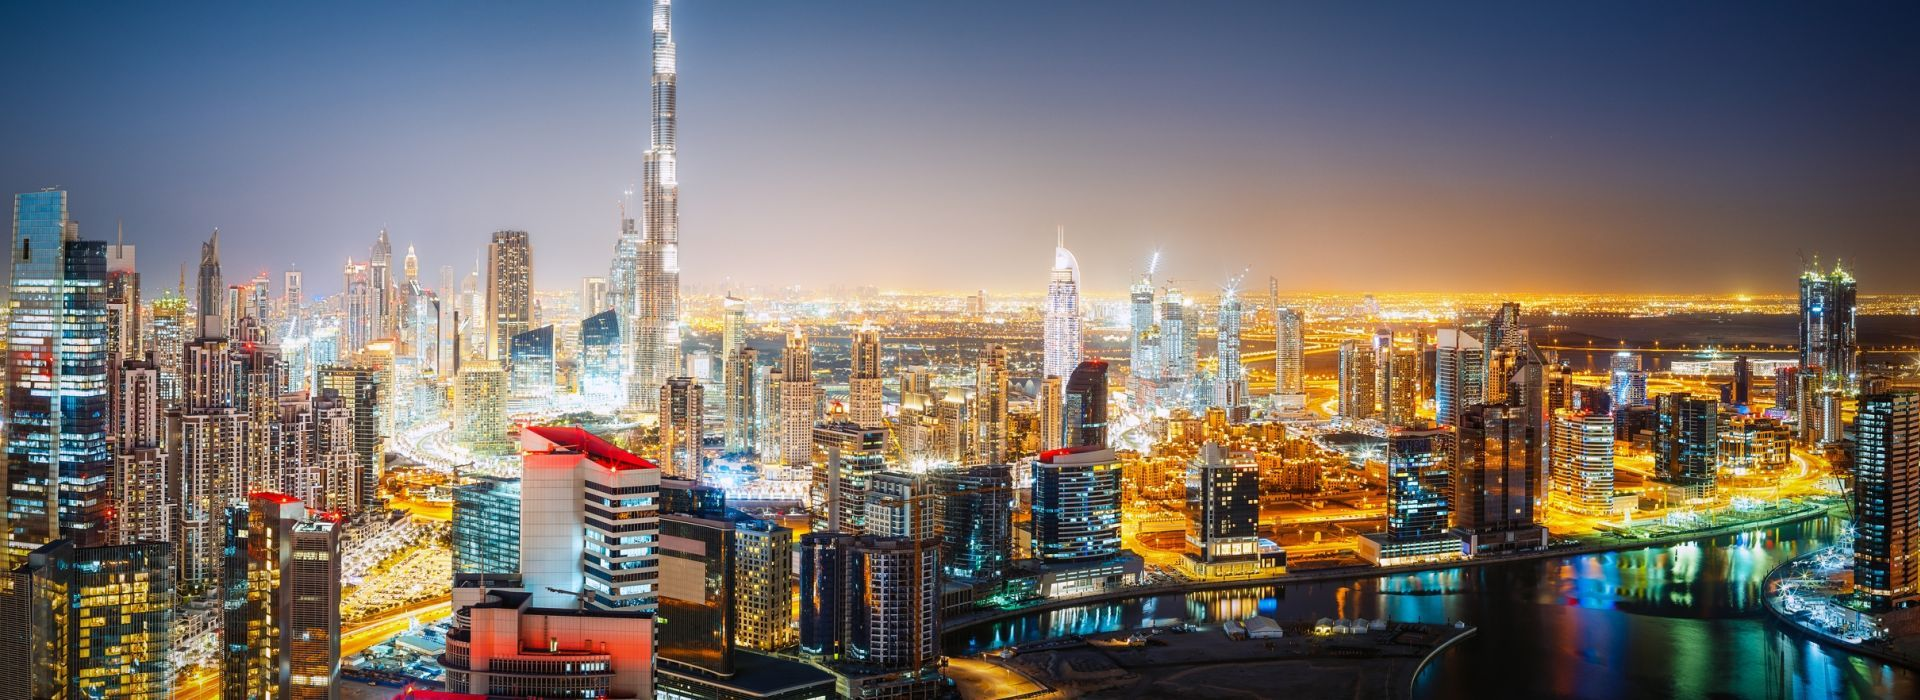 Sightseeing Tours in UAE